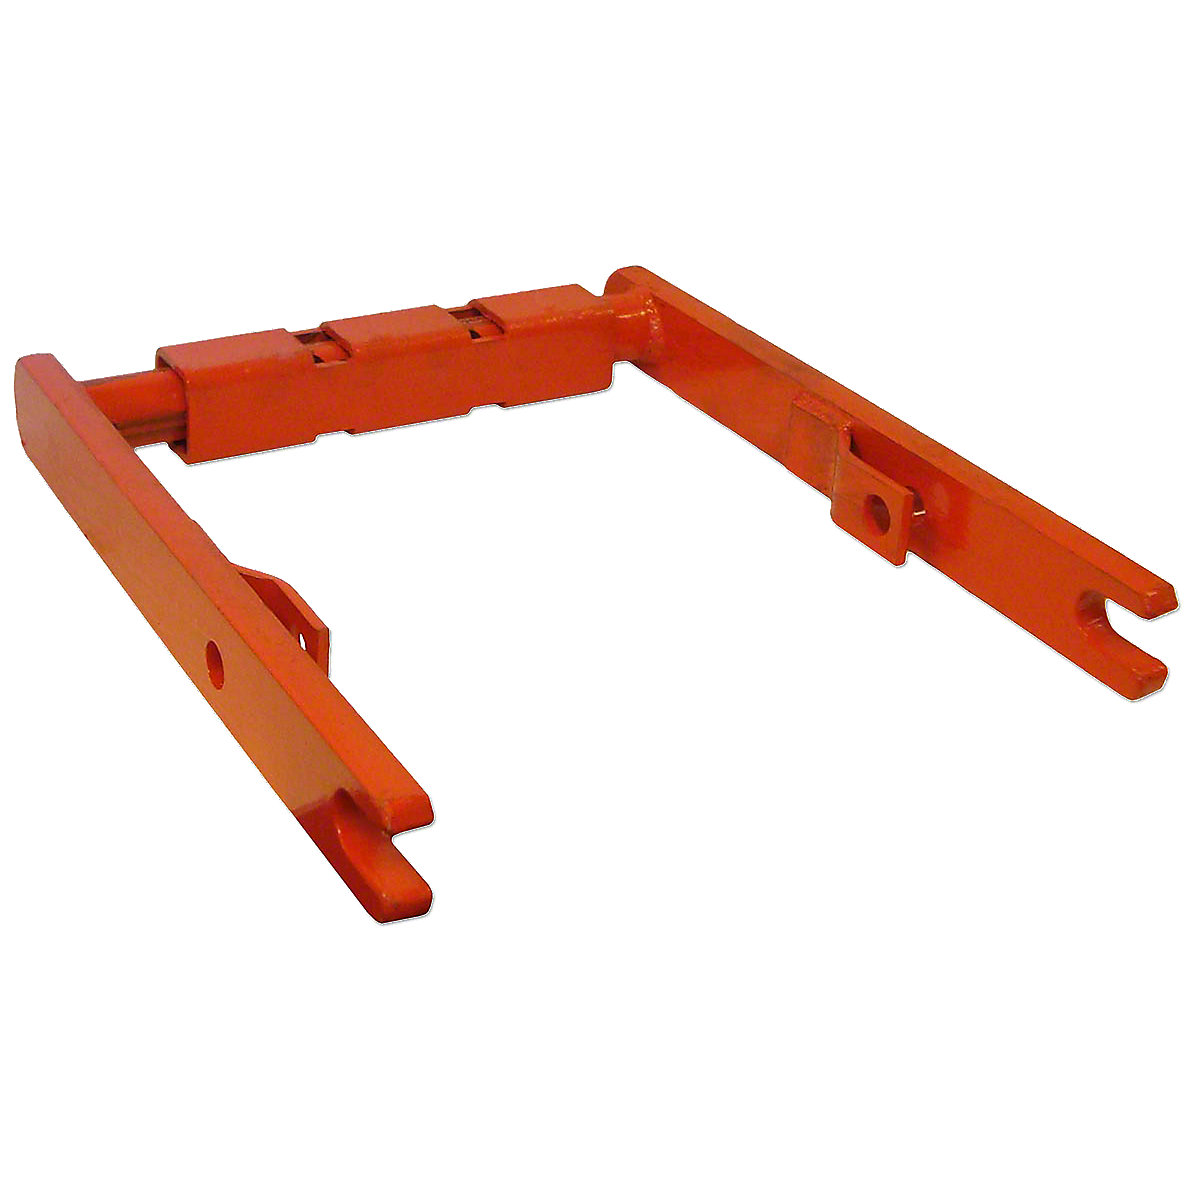 acs356 - Draw Bar Guide Assembly For Allis Chalmers: WD, WD45 ...